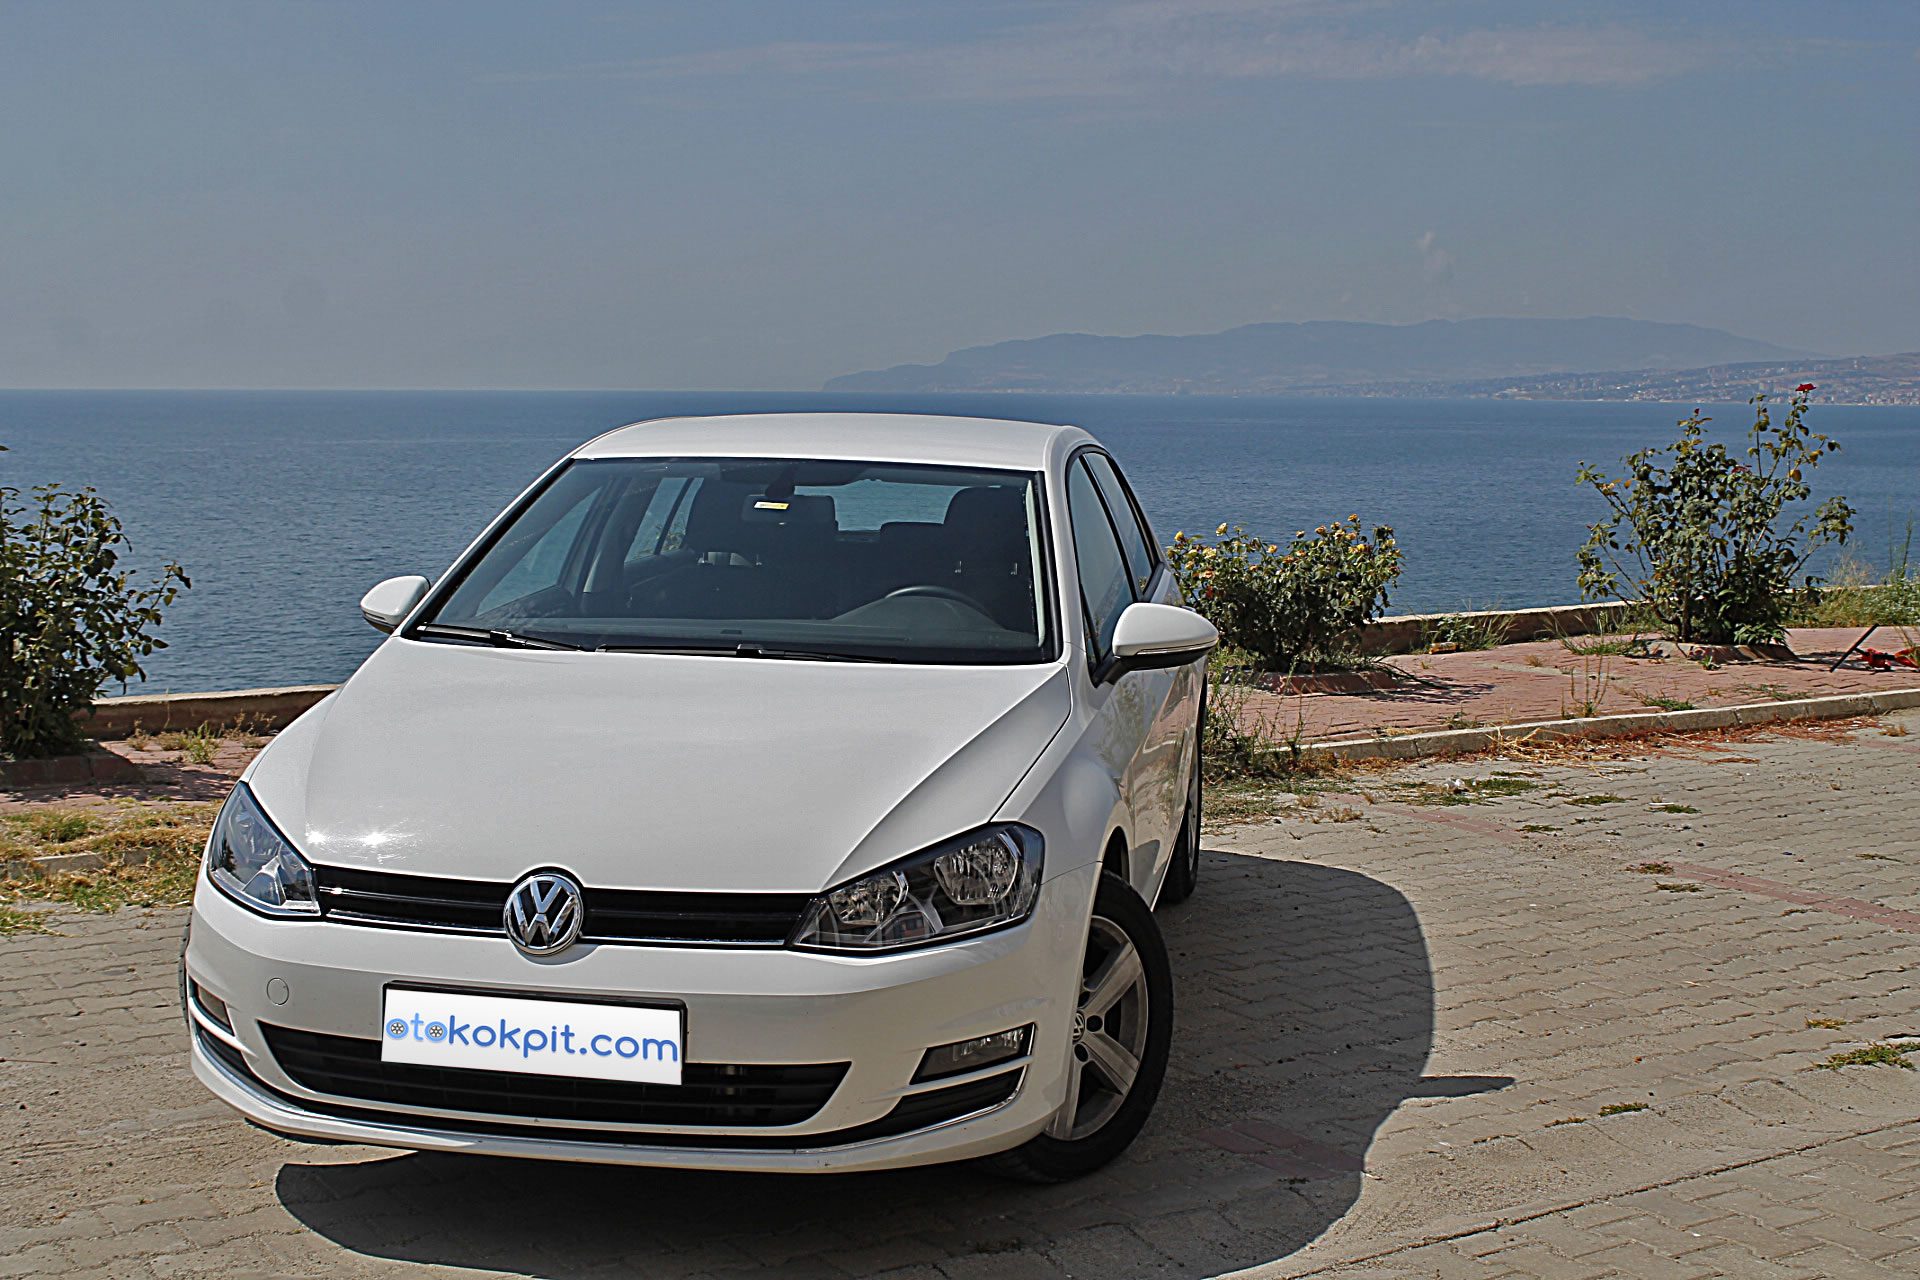 2015 yeni volkswagen golf 7 tdi dsg comfortline testi oto kokpit. Black Bedroom Furniture Sets. Home Design Ideas